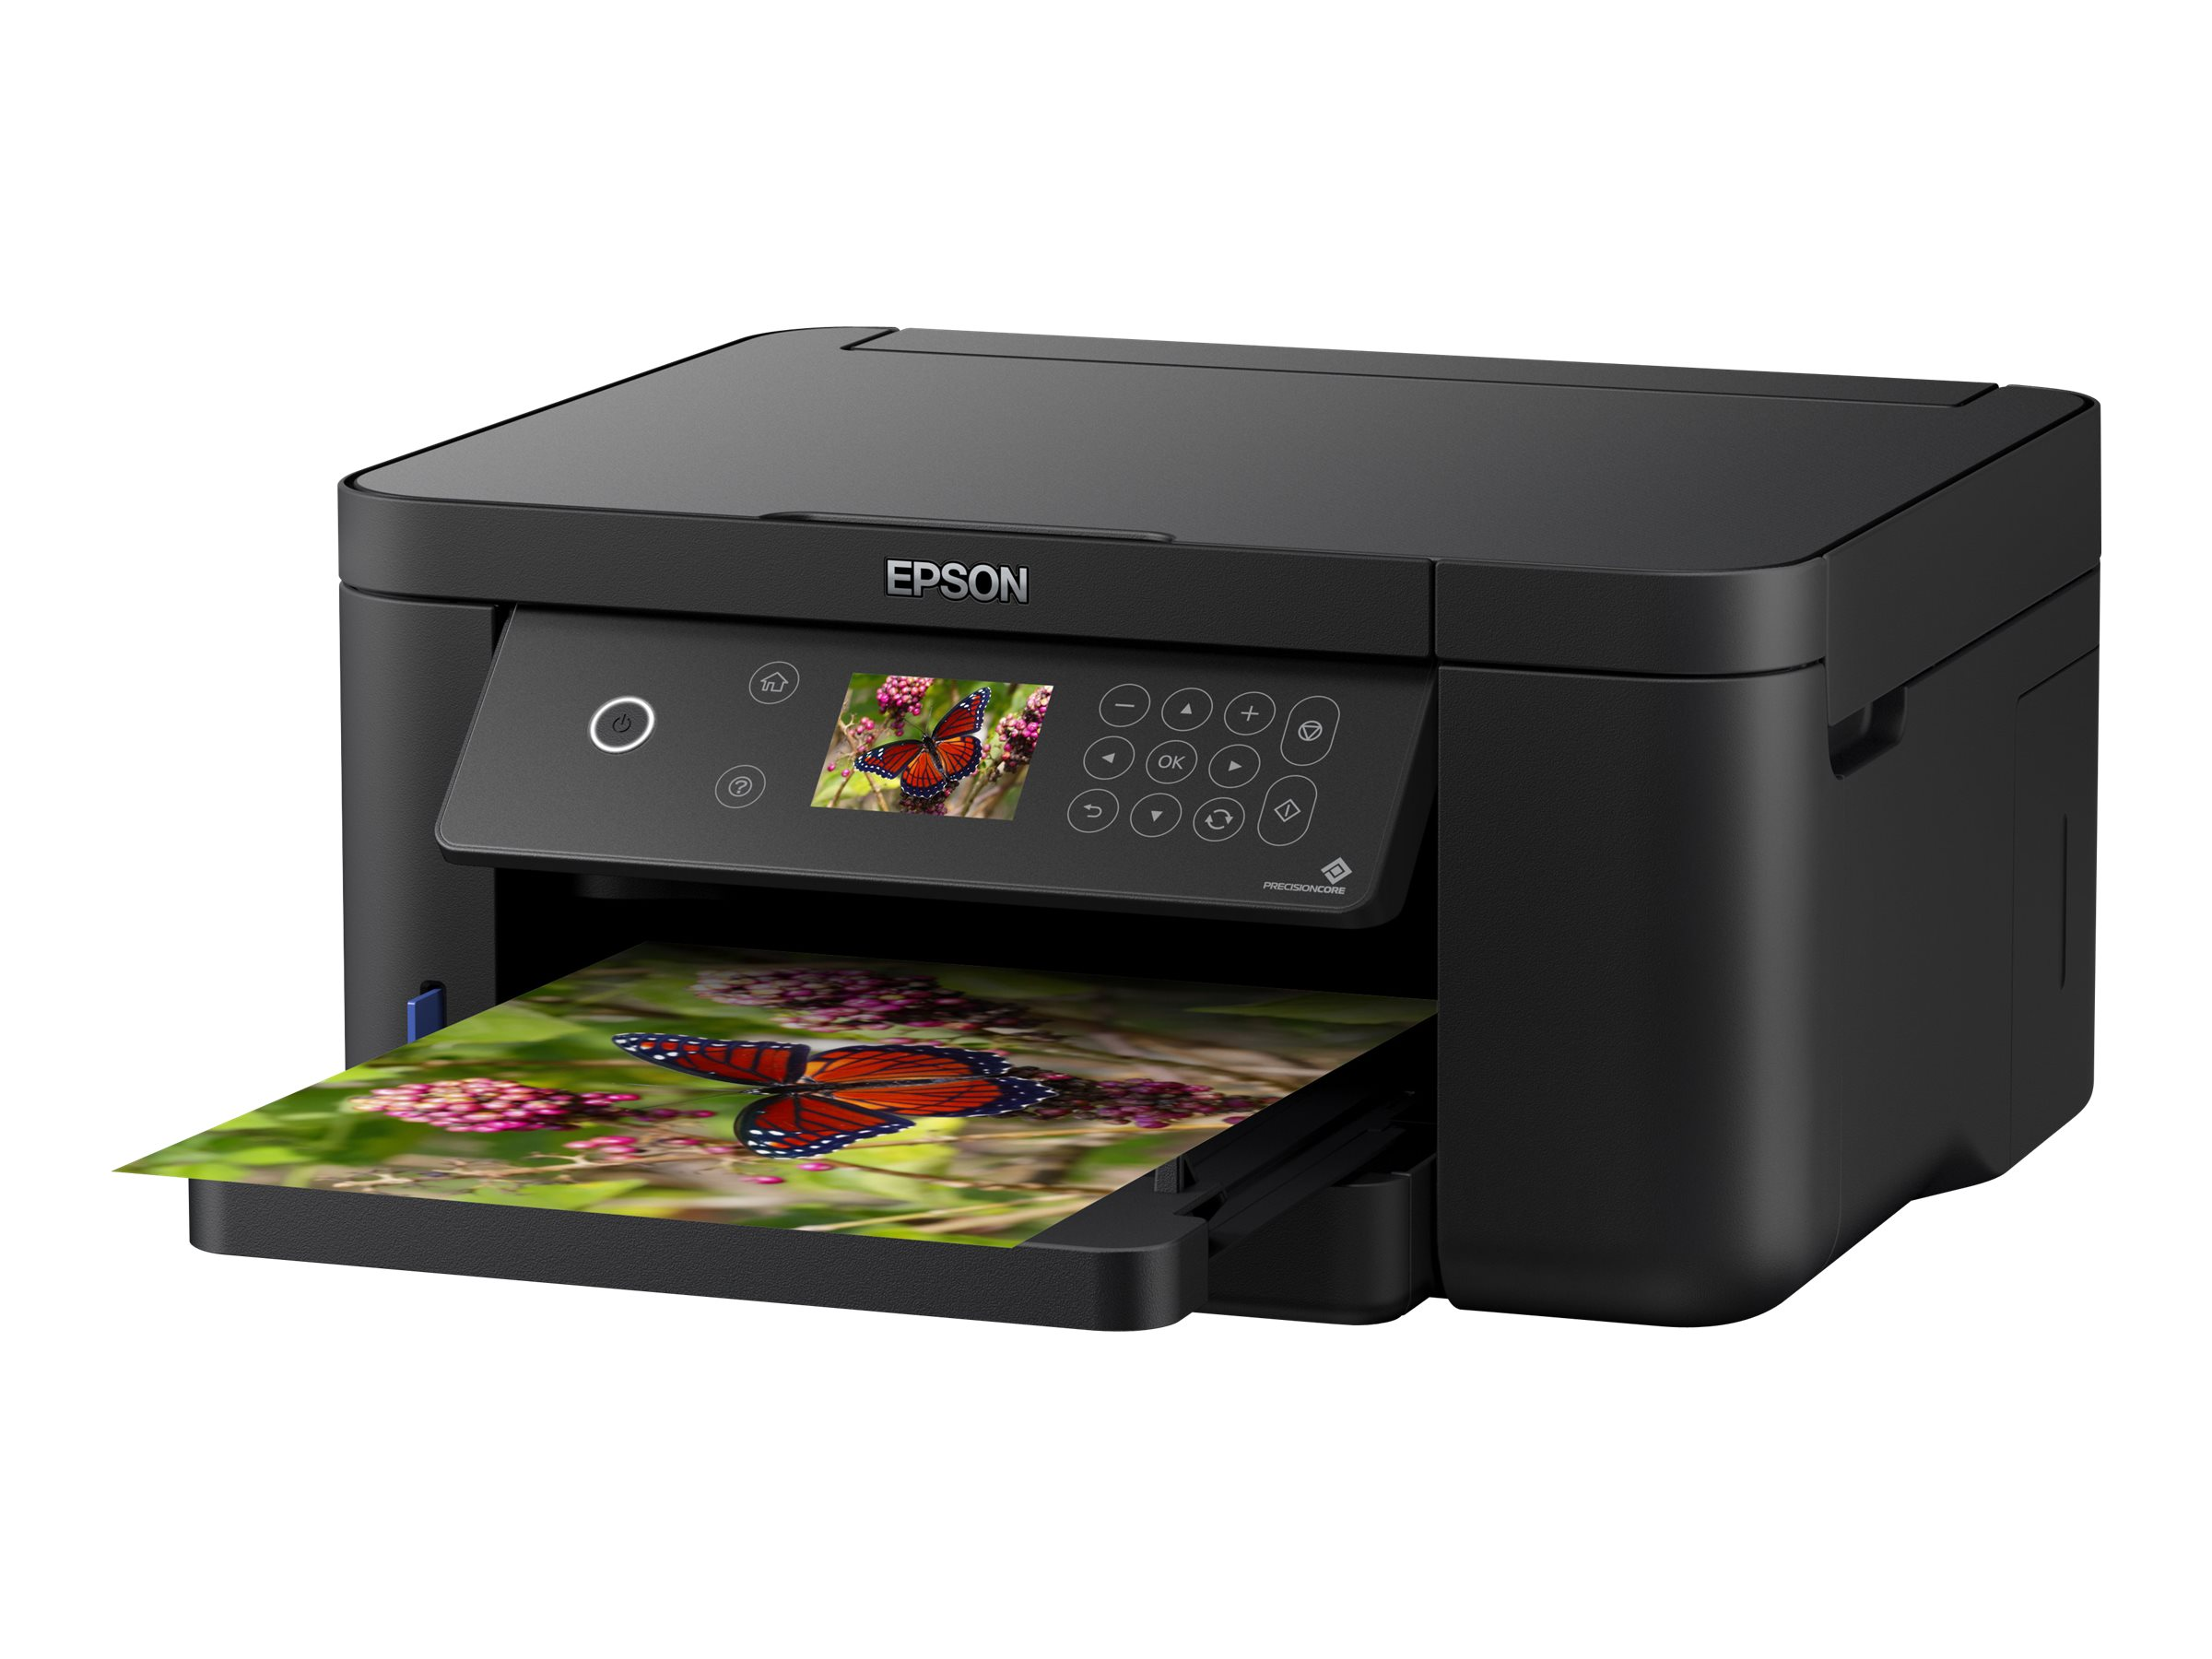 Epson Expression Home XP-5100 - Multifunktionsdrucker - Farbe - Tintenstrahl - A4 (Medien)